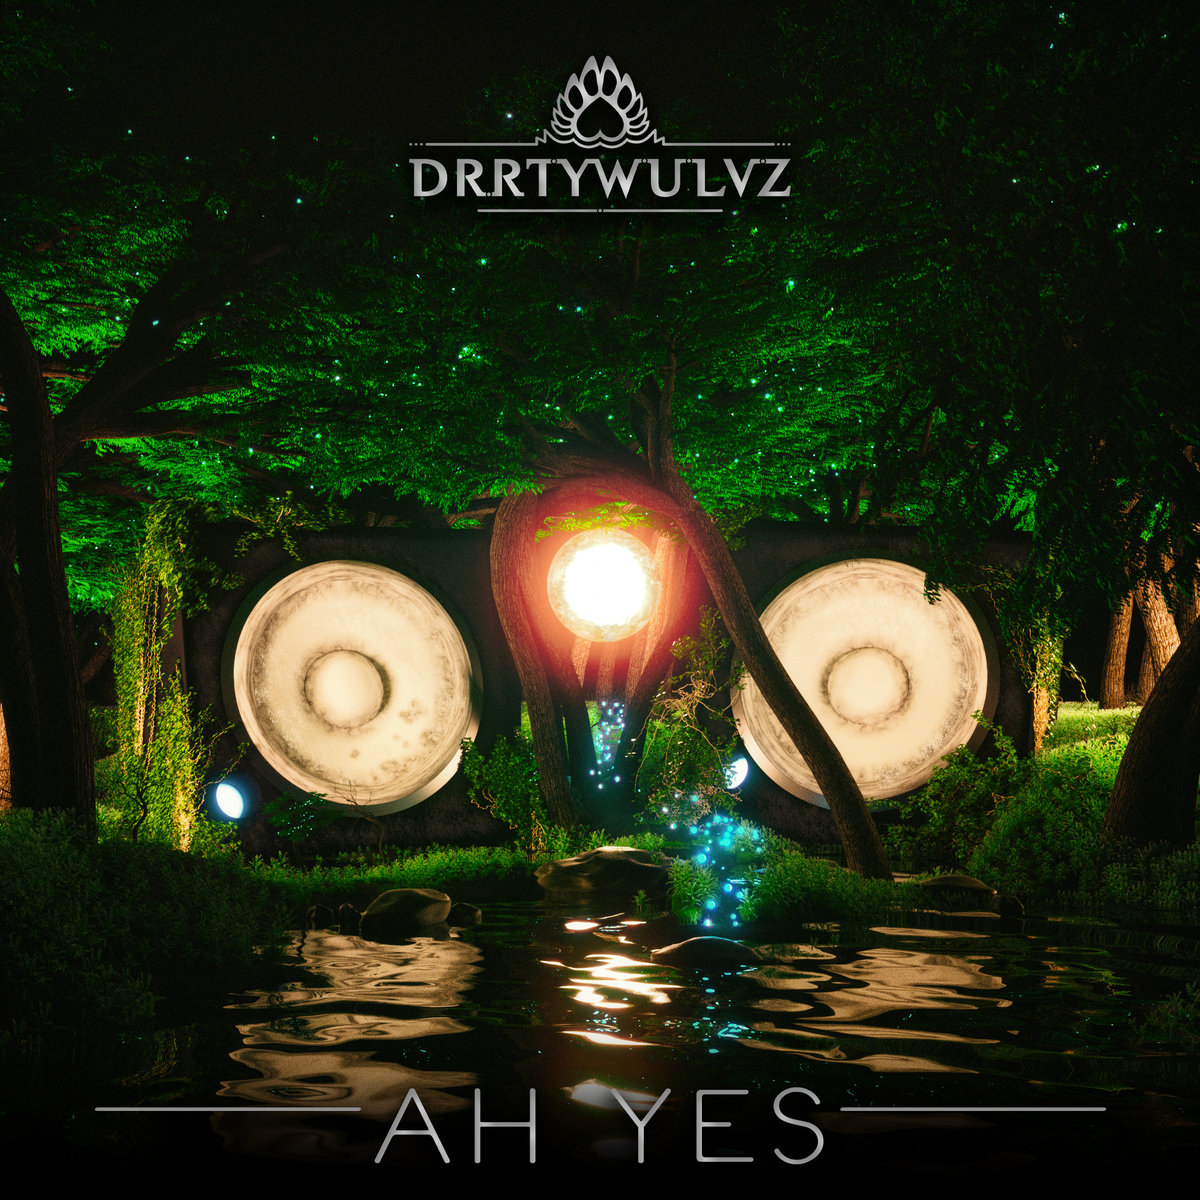 DRRTYWULVZ - Dancing @ 'Ah Yes' album (bass, drrtywulvz)